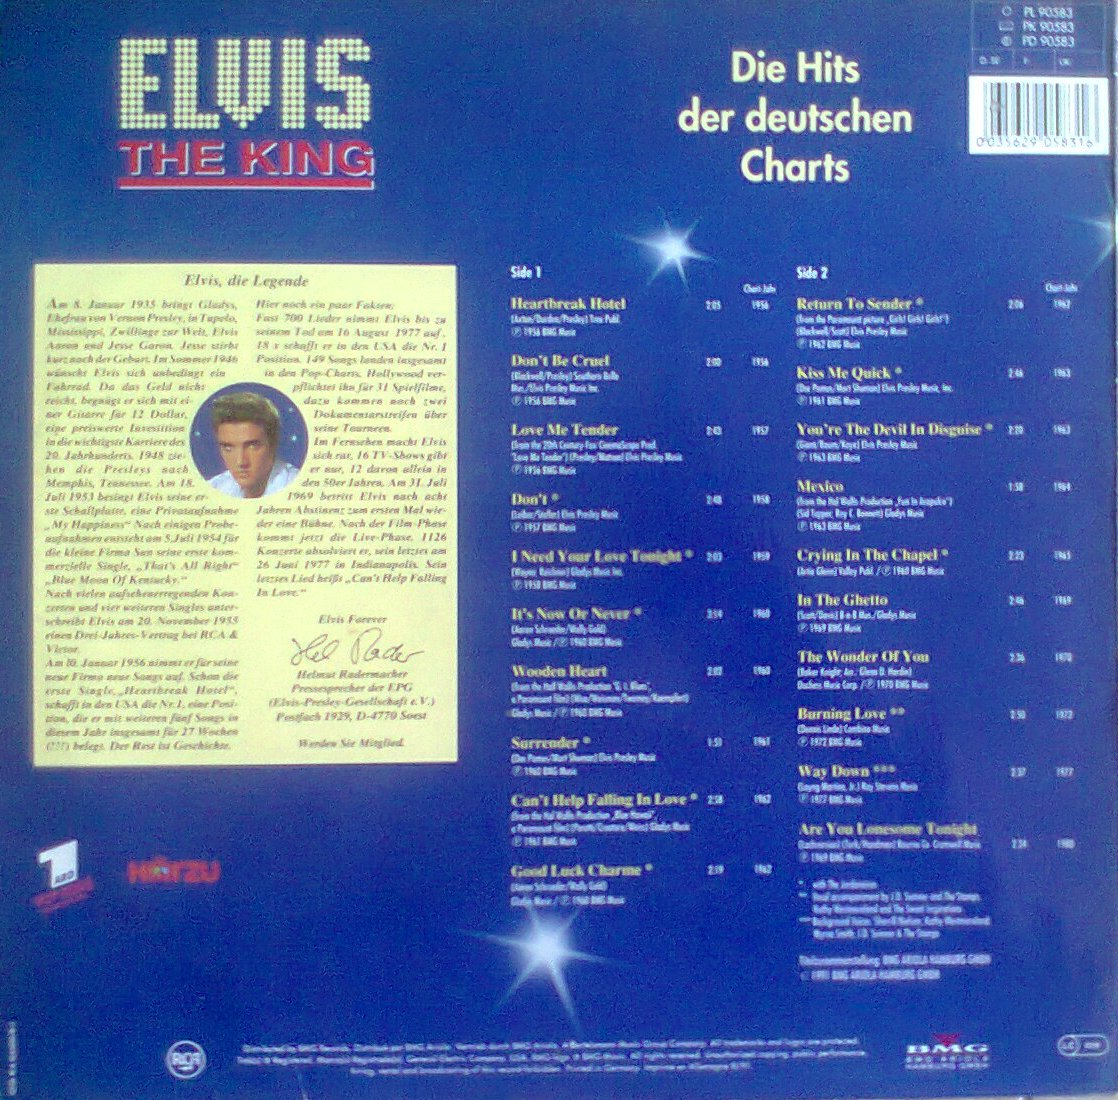 ELVIS - THE KING - Die Hits der deutschen Charts Foto0293ddzd7